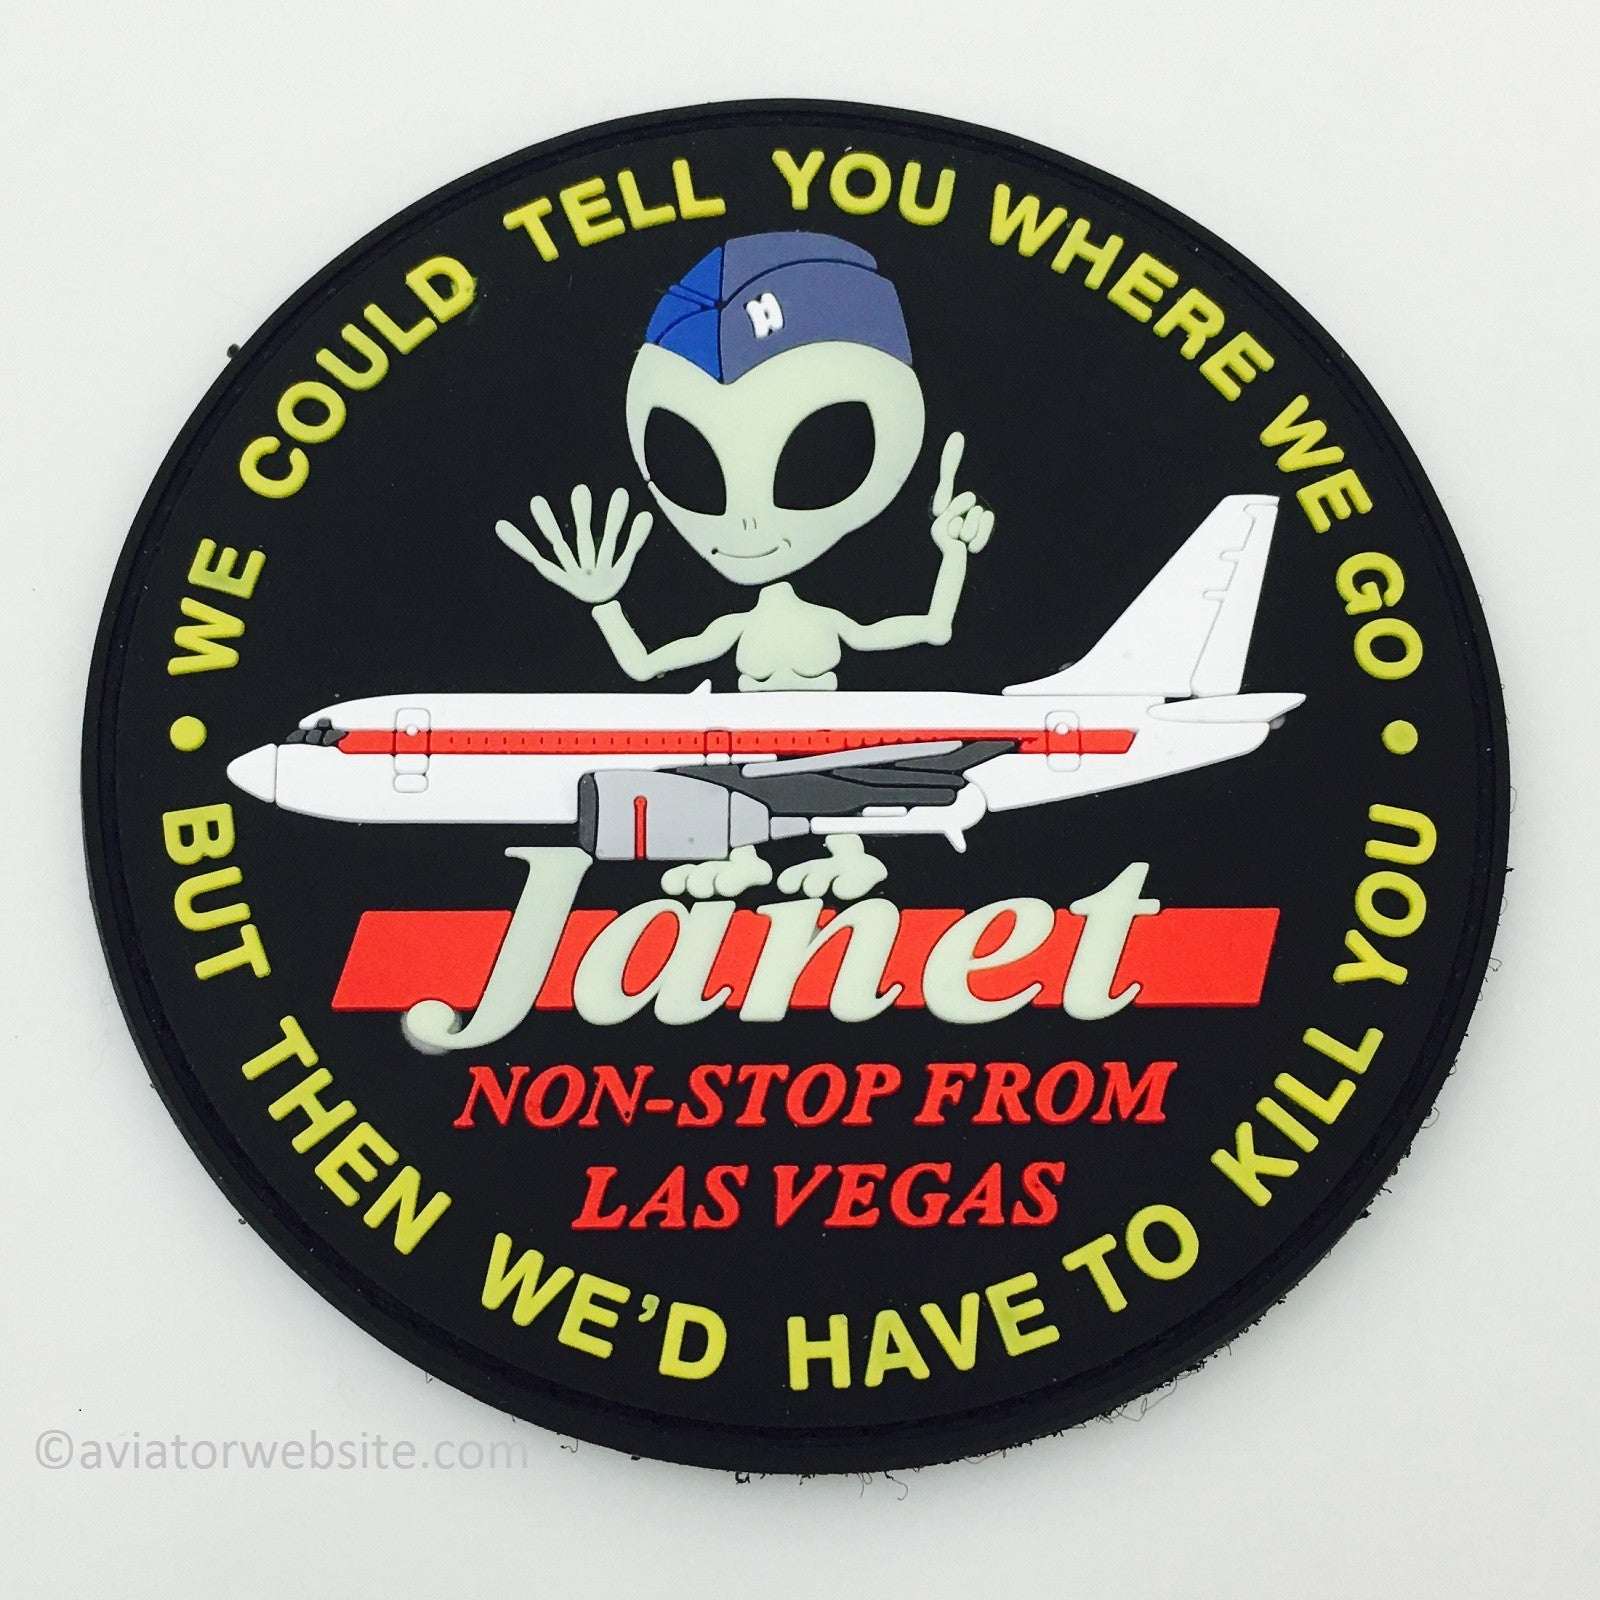 Aviation Patches and Military Patches | AVIATORwebsite